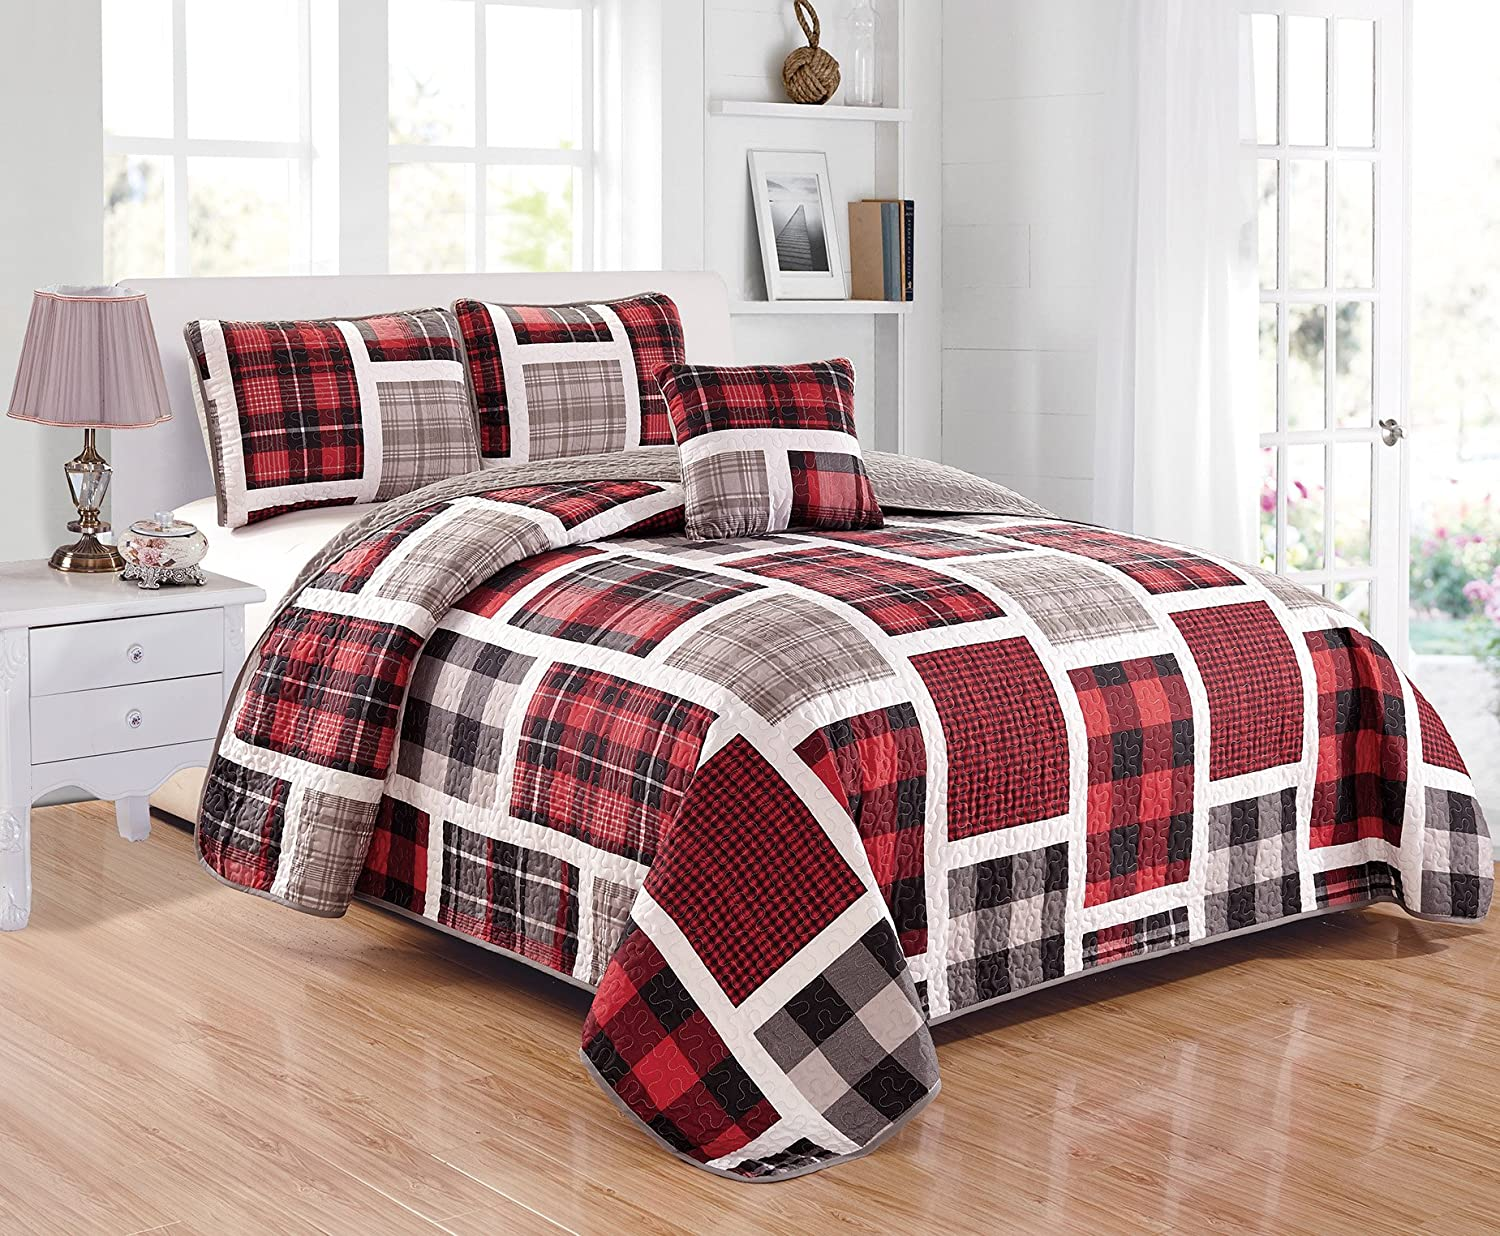 Linen Plus Full Size 4pc Quilted Bedspread Set for Teen Boys Patchwork Plaid Red Grey Black White New